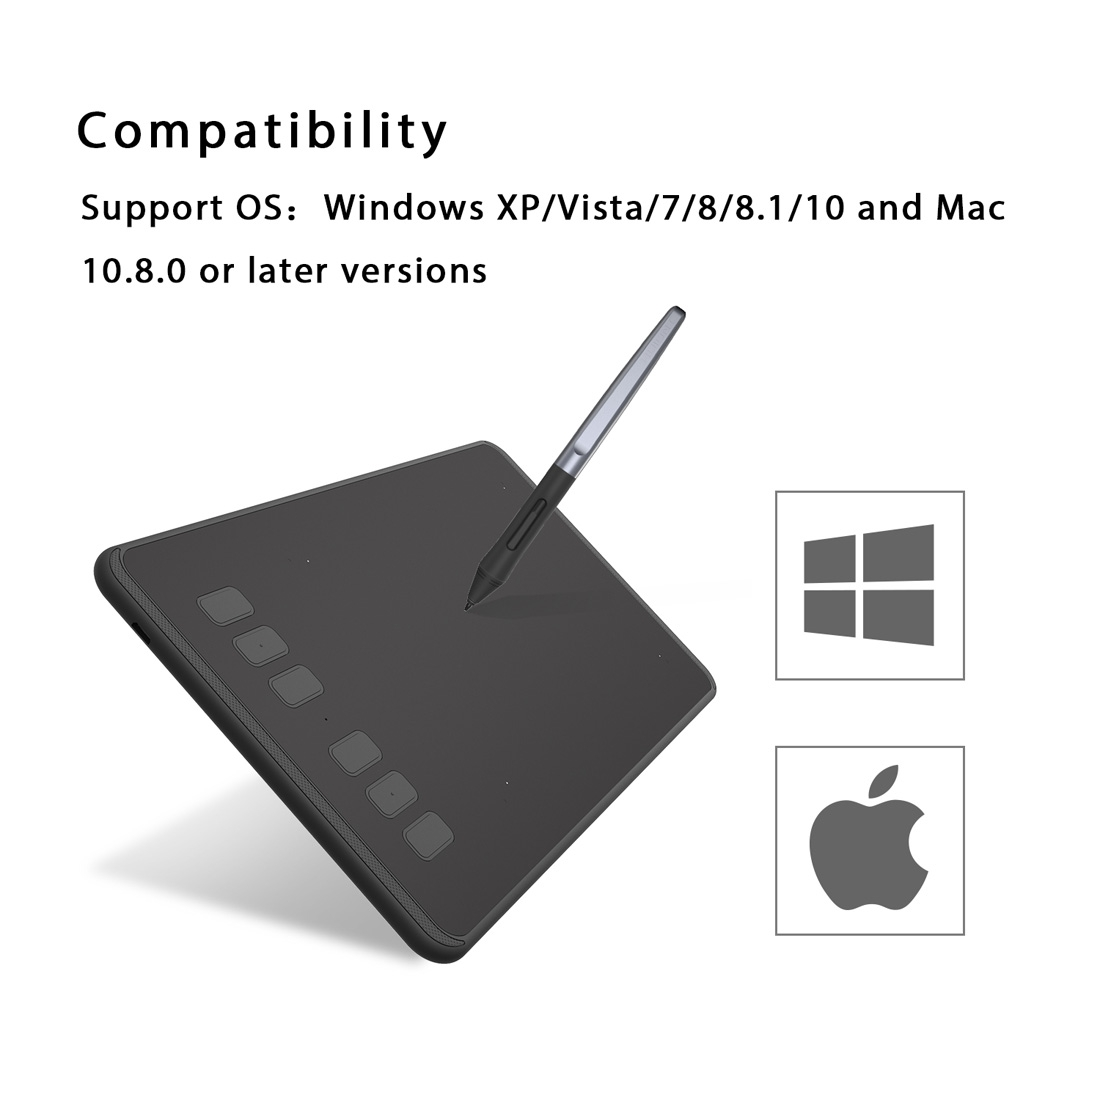 HUION Inspiroy Series H640P 5080LPI Professional Art USB Graphics Drawing Tablet for Windows / Mac OS, with Battery-free Pen